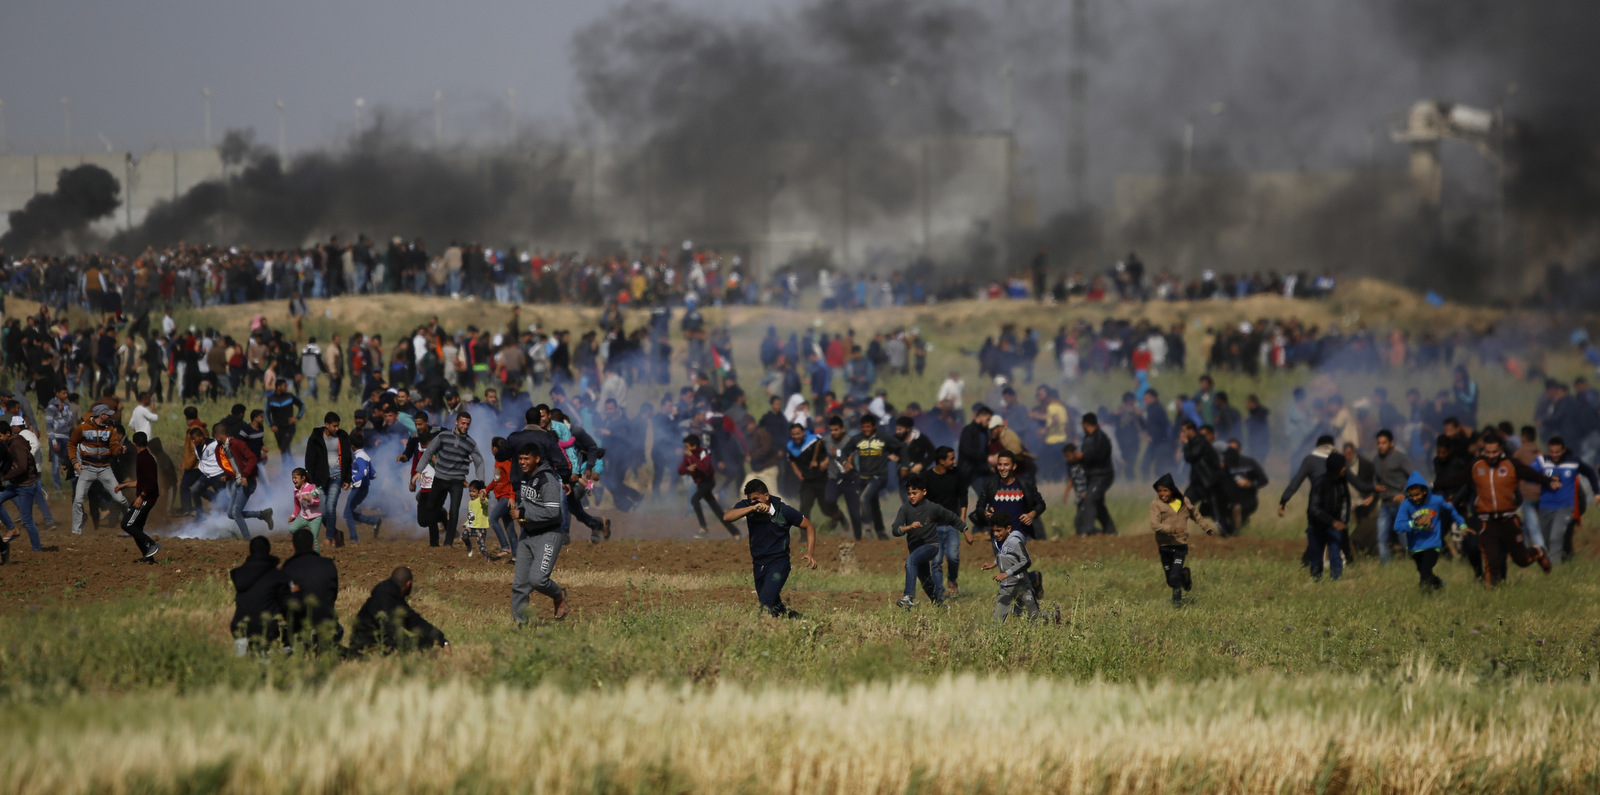 If Israel Were Not an Ally, US Would Be Working to Overthrow its Government